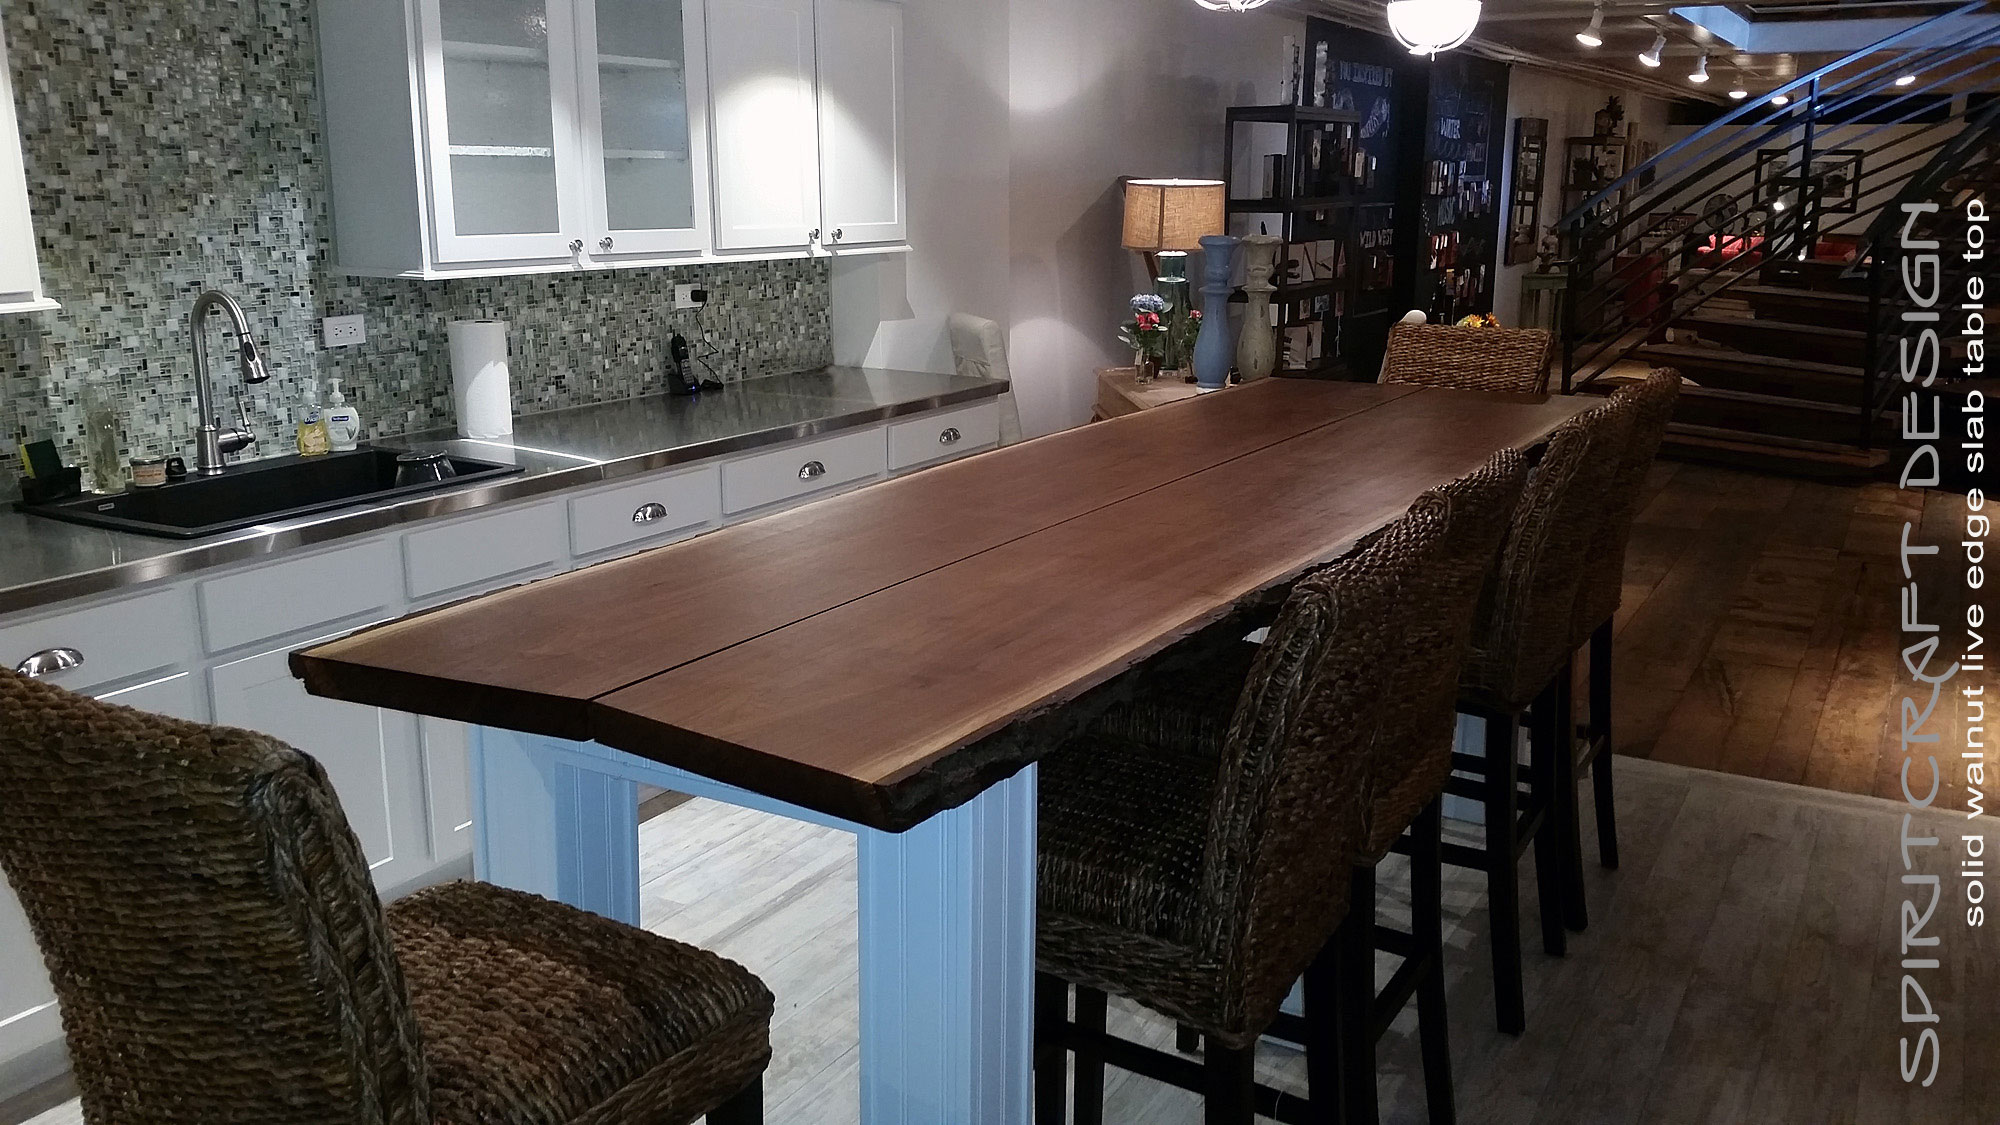 About spiritcraft solid hardwood furniture dundee il for Live edge kitchen island